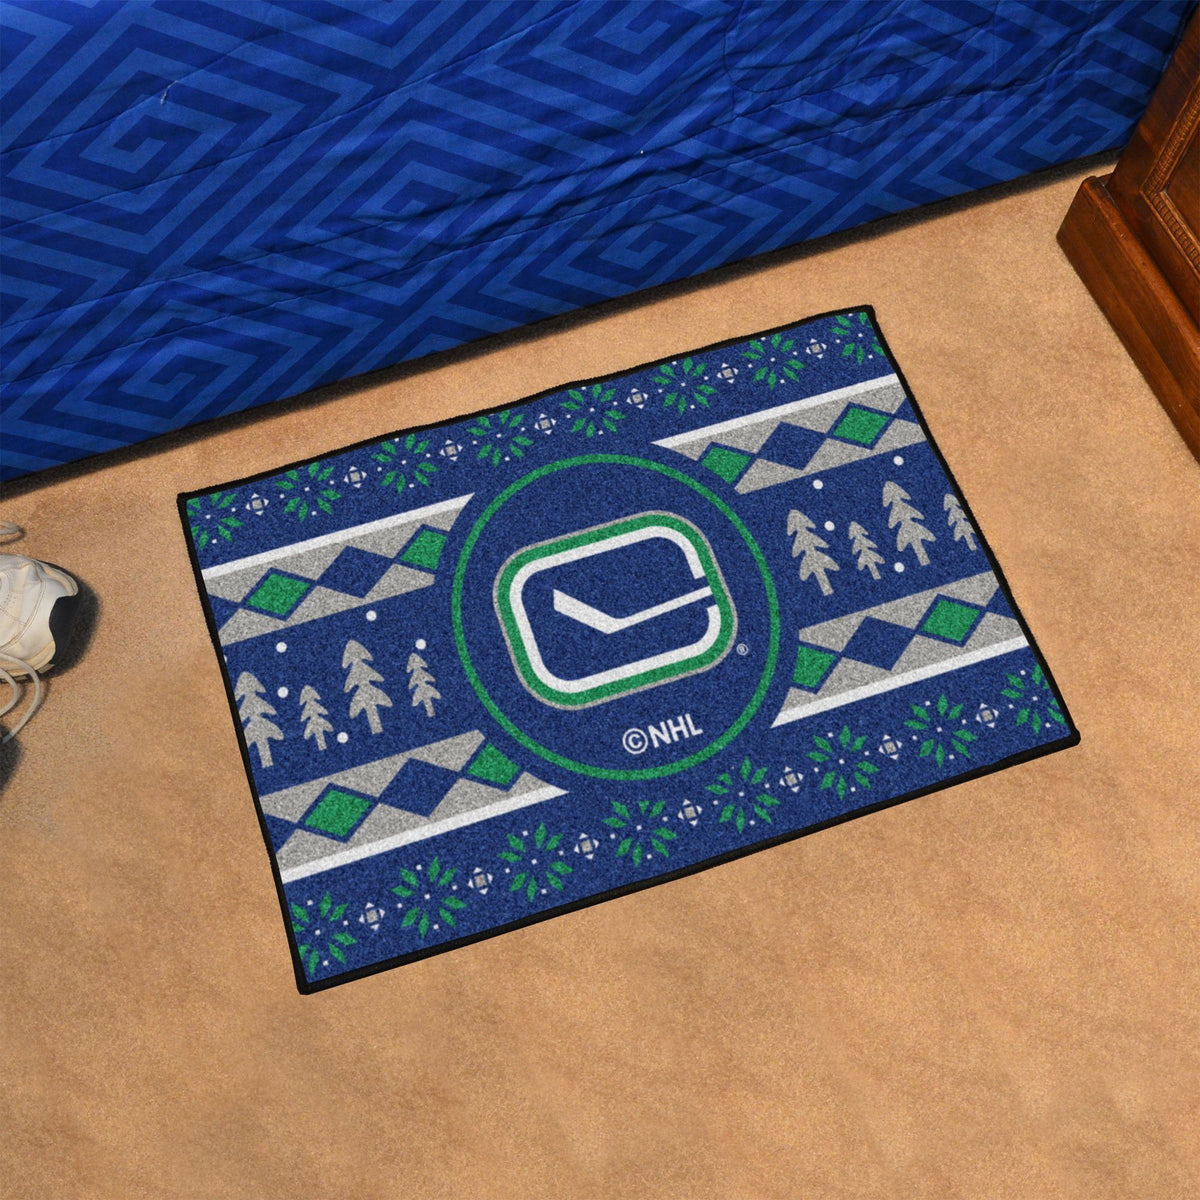 NHL - Holiday Sweater Starter Mat NHL Mats, Rectangular Mats, Holiday Sweater Starter Mat, NHL, Home Fan Mats Vancouver Canucks